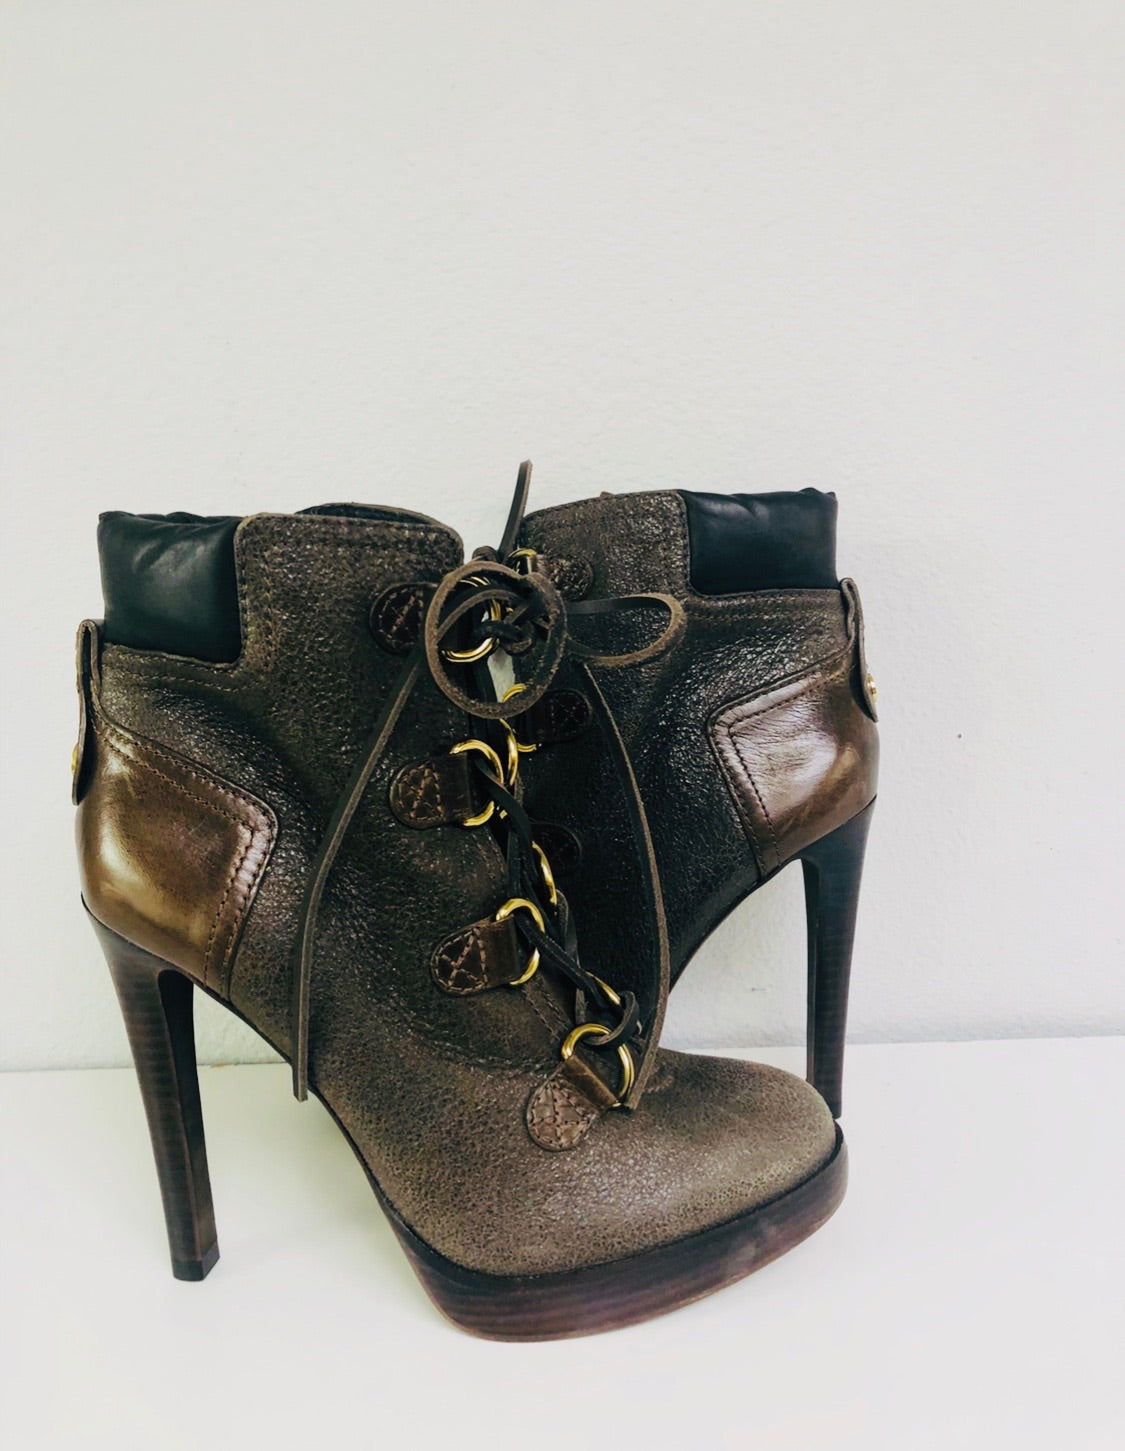 Tory Burch Booties - Vanity's Vault